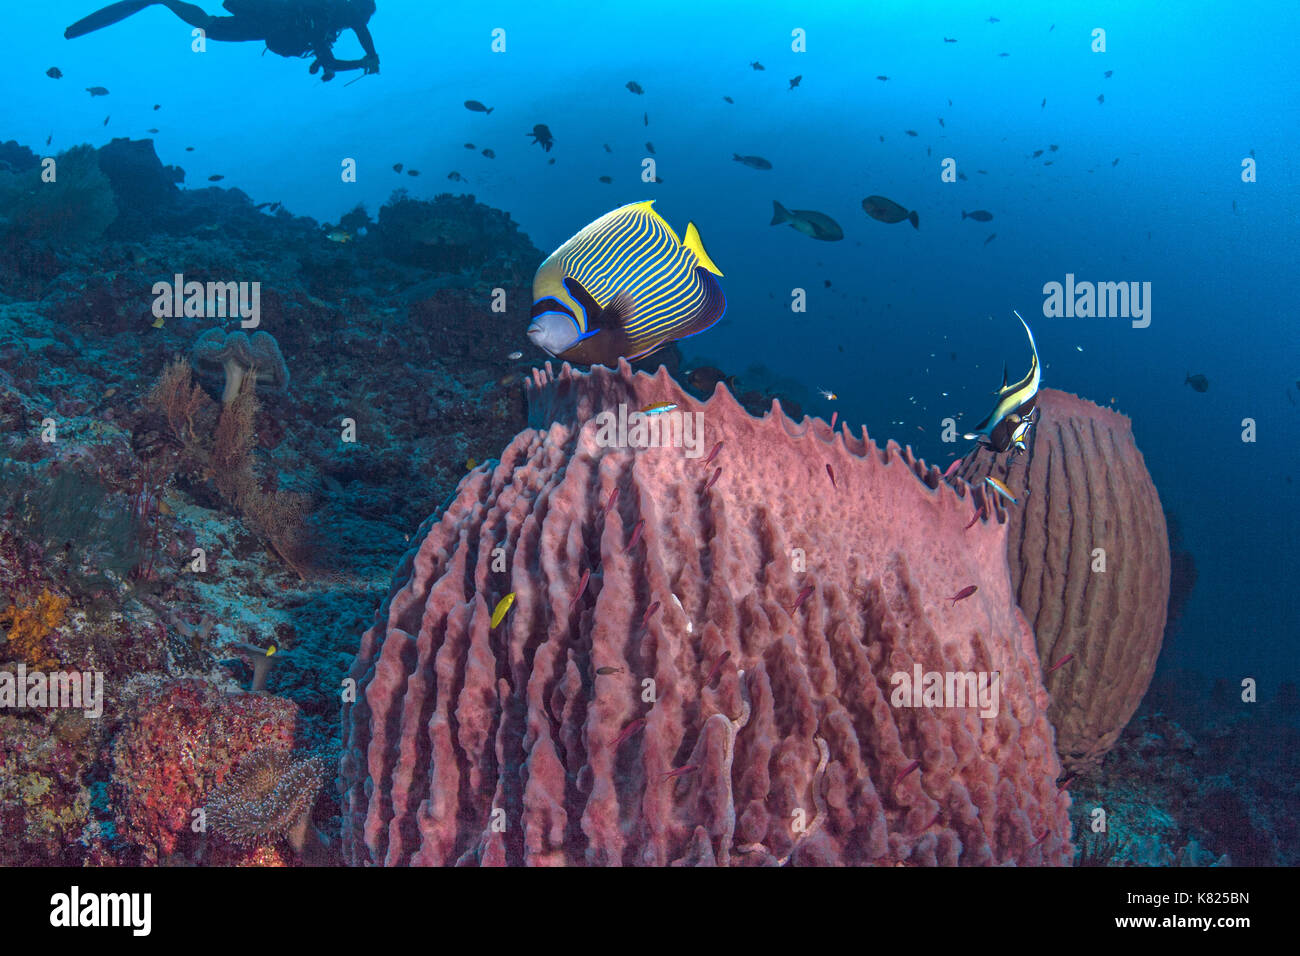 Emperor angelfish and Moorrish Idol hover over large barrel sponges. Spartly Island, South China Sea. - Stock Image